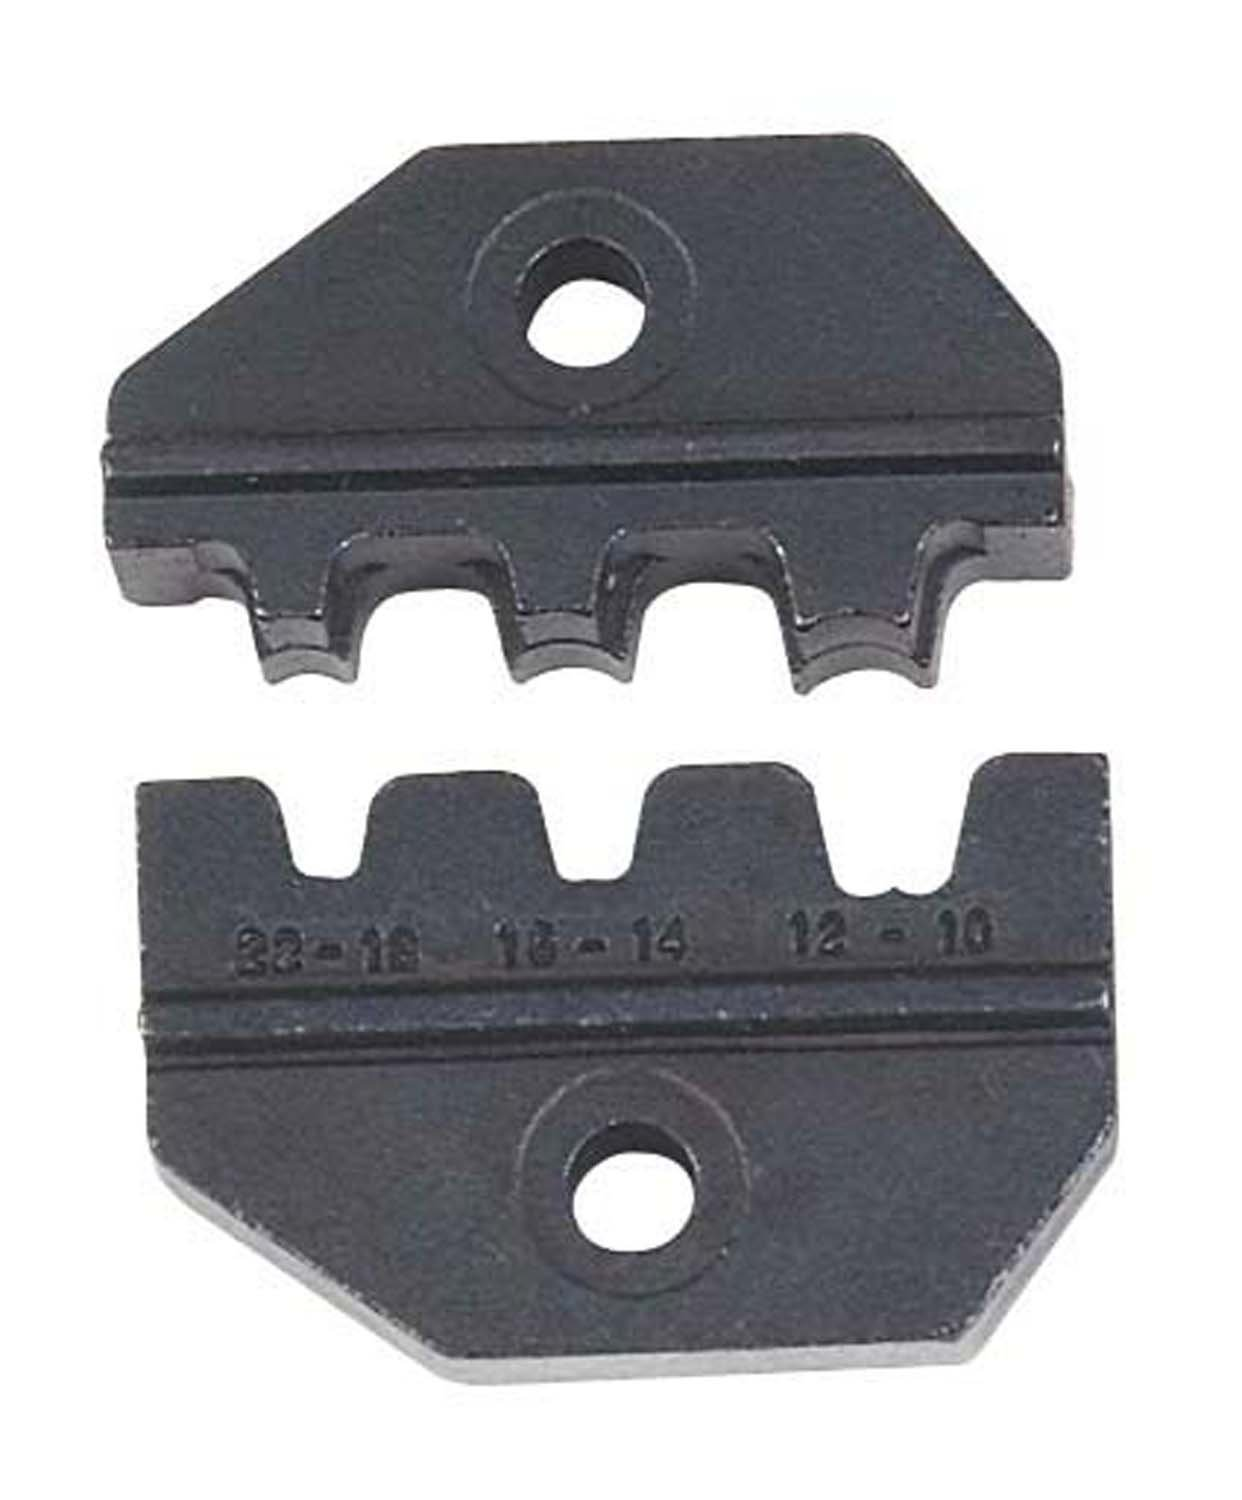 3506 - Amp Pin Crimp Jaws, Fits PN 35051 Image